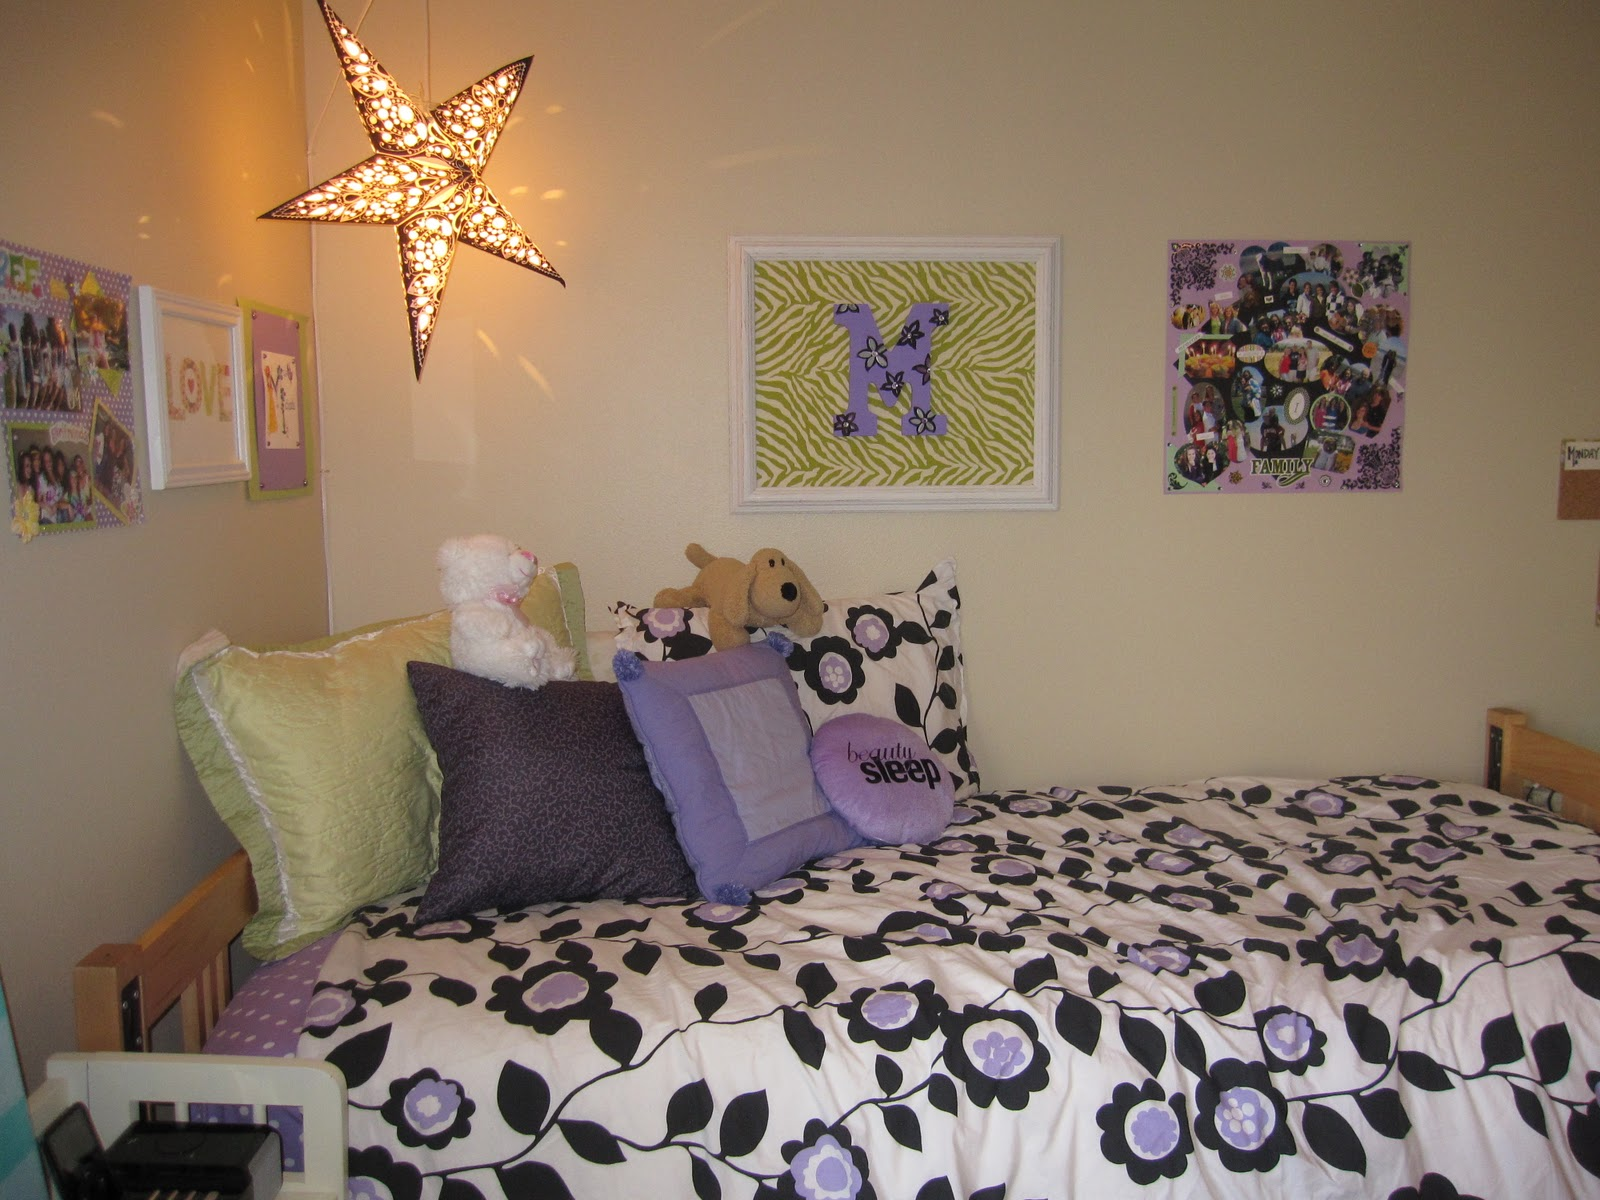 I m so excited to share my new room with all of you  I arrived at our new  apartment on Friday and have been busy decorating ever since  Here s the  reveal. Finally   My New Room    Michaela Noelle Designs